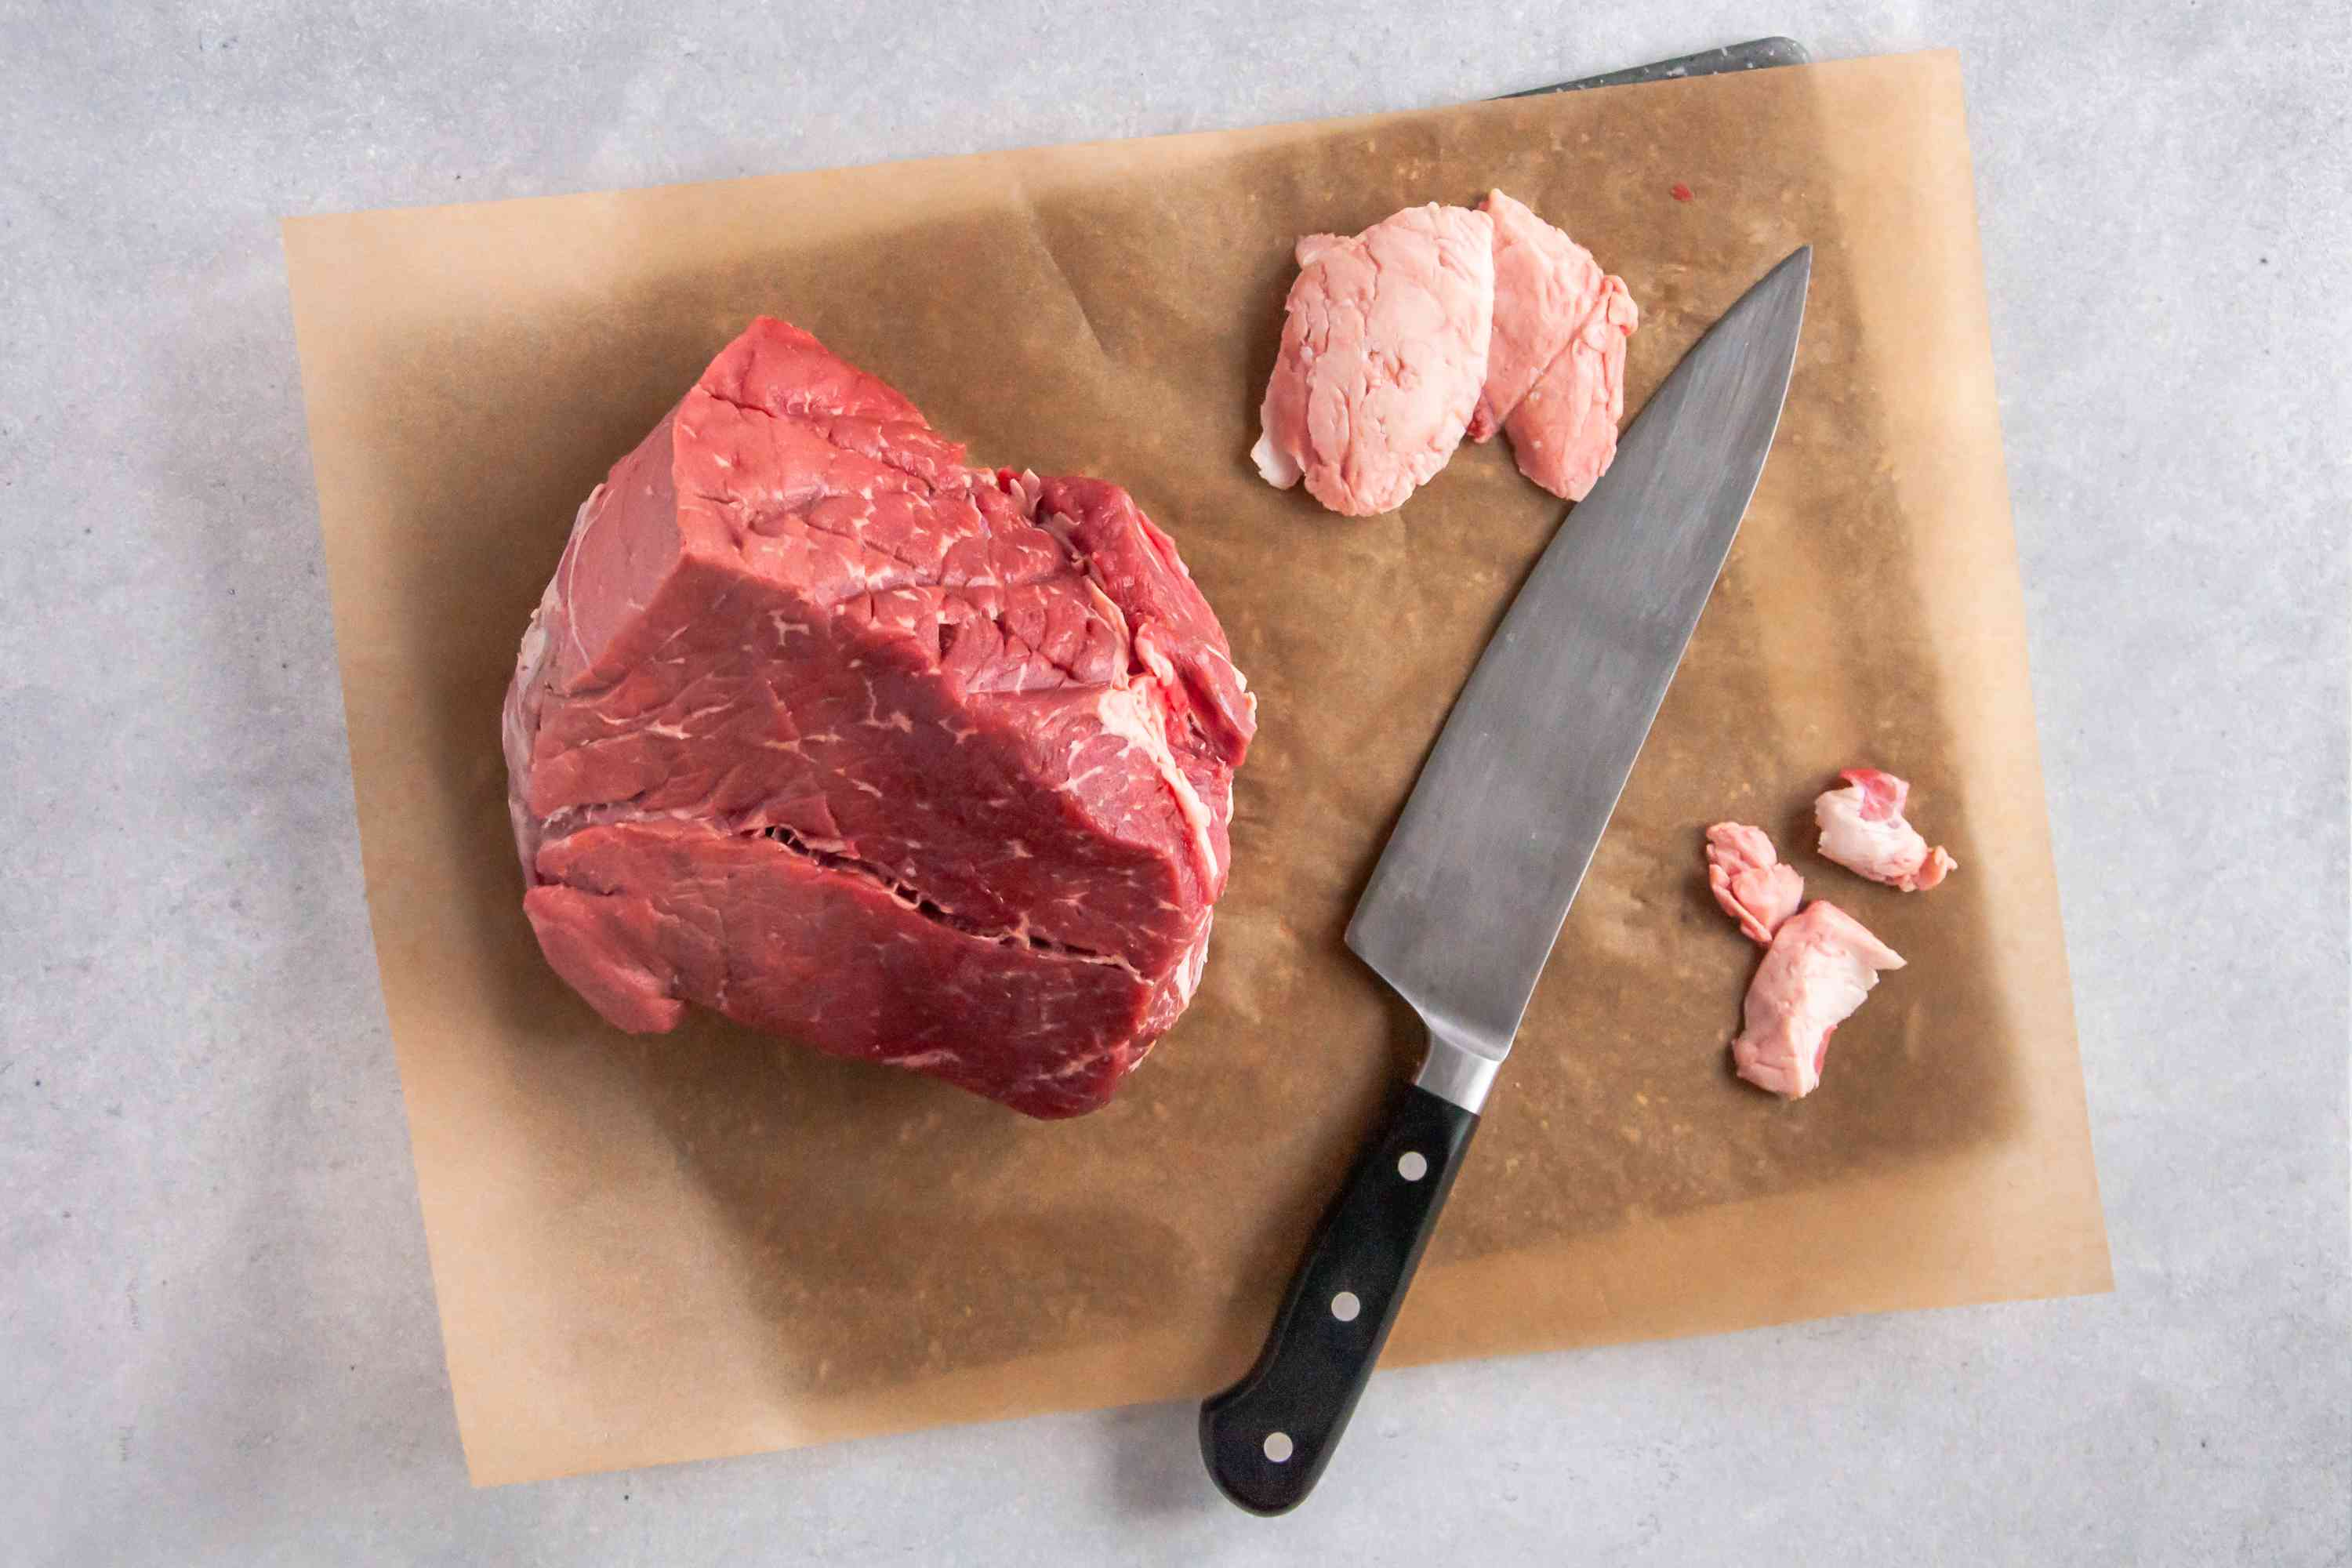 Trim all of the fat off of the meat